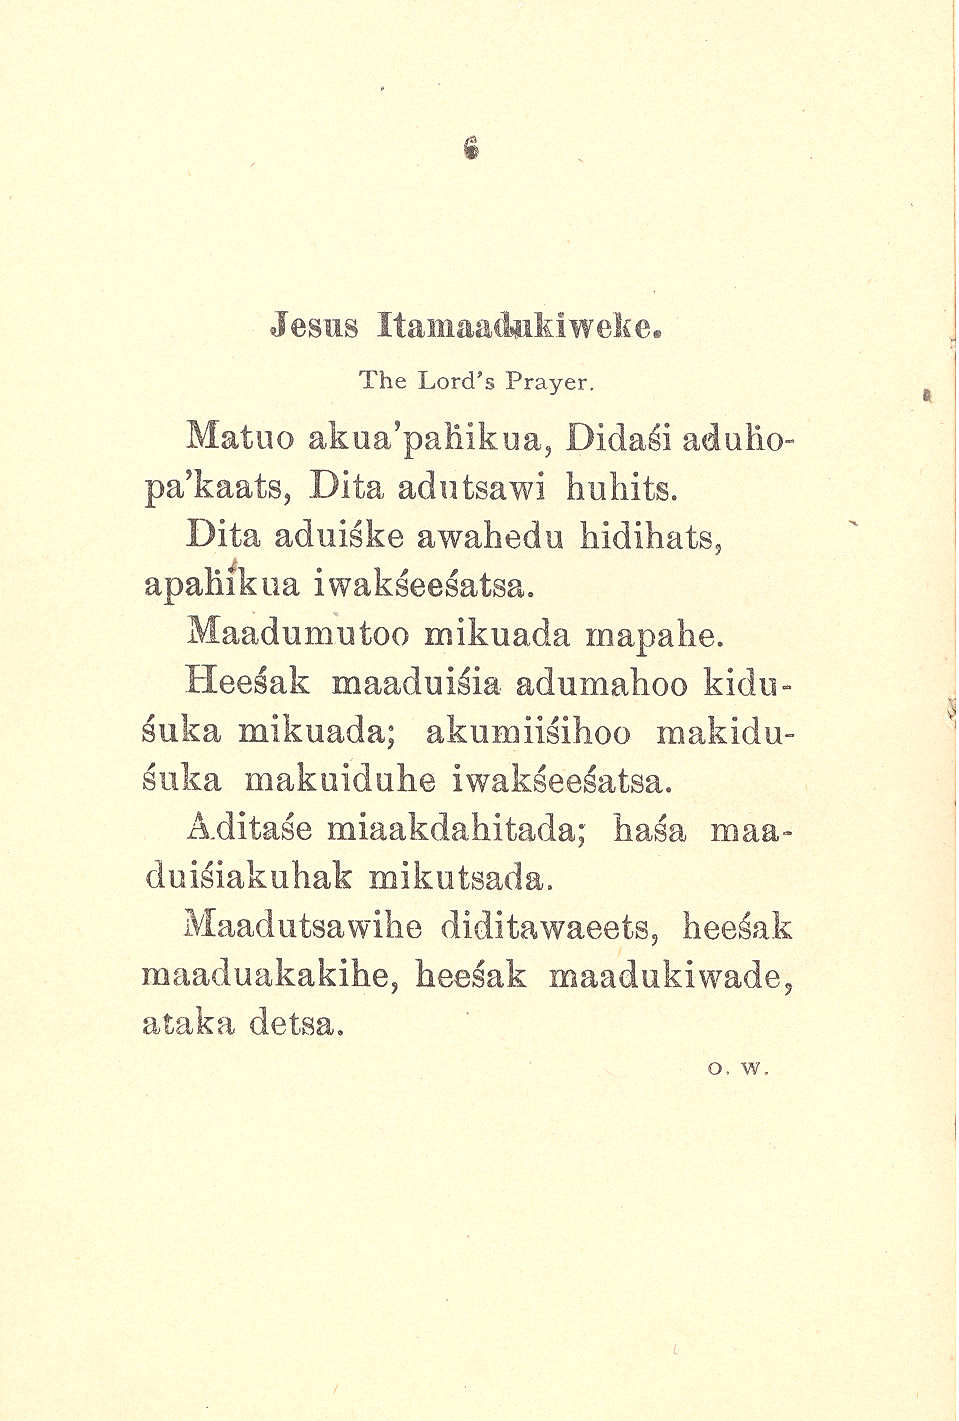 Hidatsa Hymns. The Reverend Hall and members of his staff collaborated with interpreters to translate Christian Hymns and prayers into Hidatsa (Gros Ventre) language. As the missionaries learned the language and translated the religious hymns from English into Hidatsa, they also preserved the language of the Hidatsas.